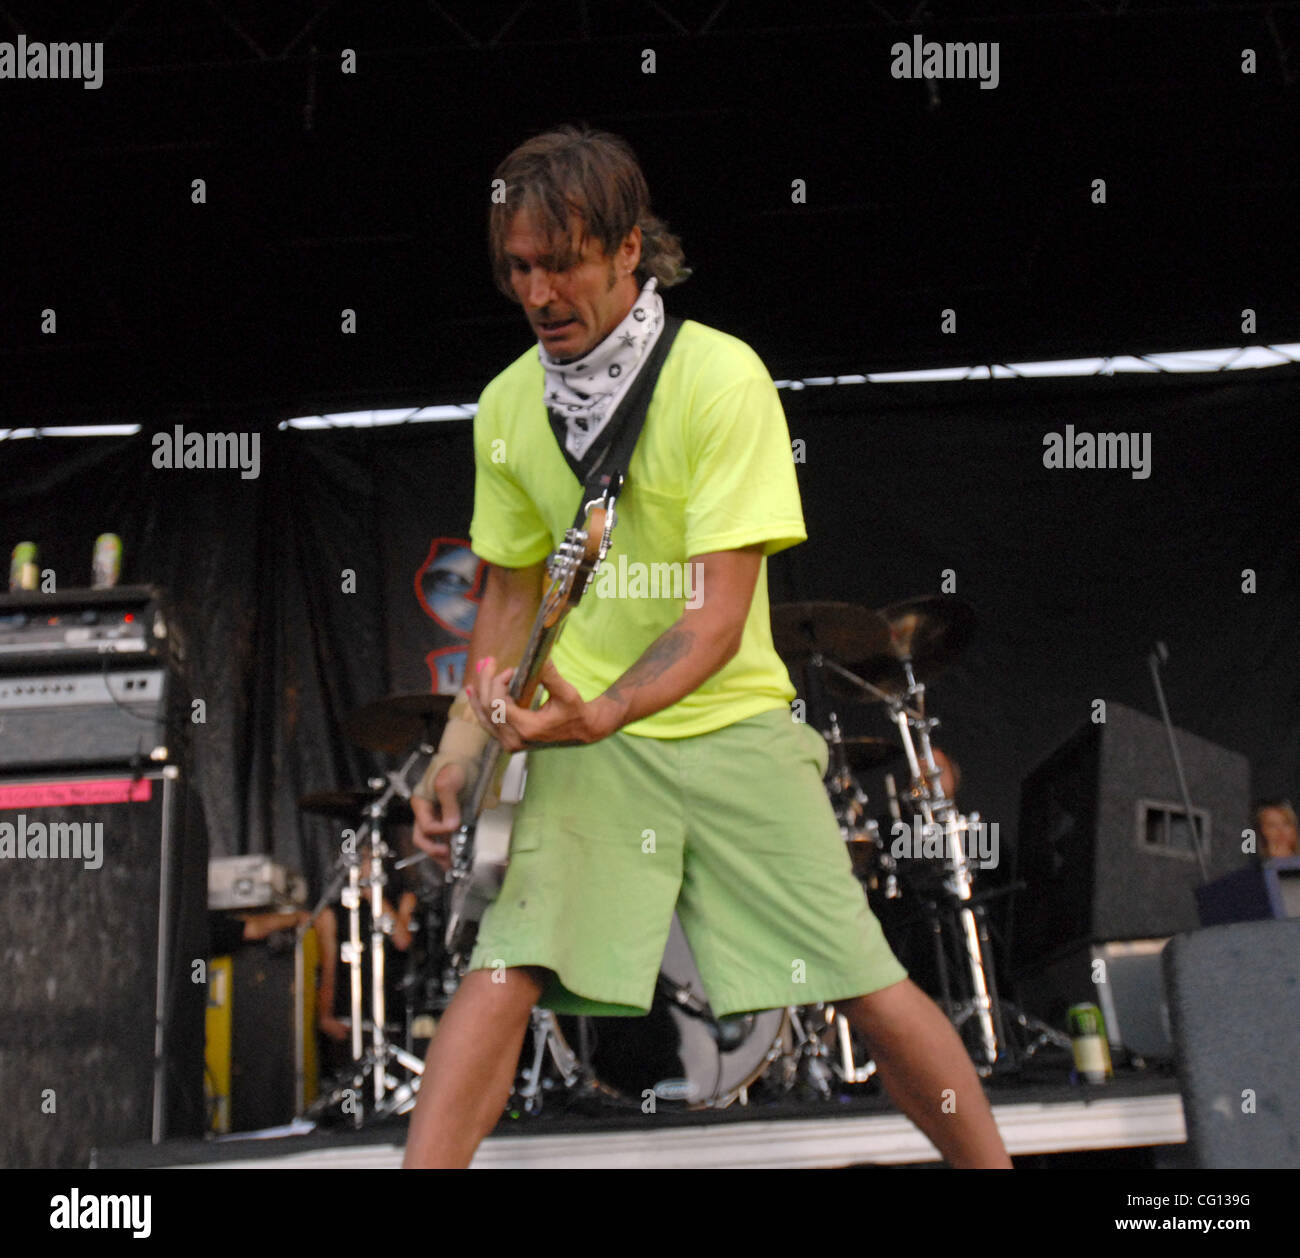 Jul. 23, 2007; Charlotte, NC USA;  Bass Guitarist JAY BENTLEY of the band BAD RELIGION performs live as part of - Stock Image